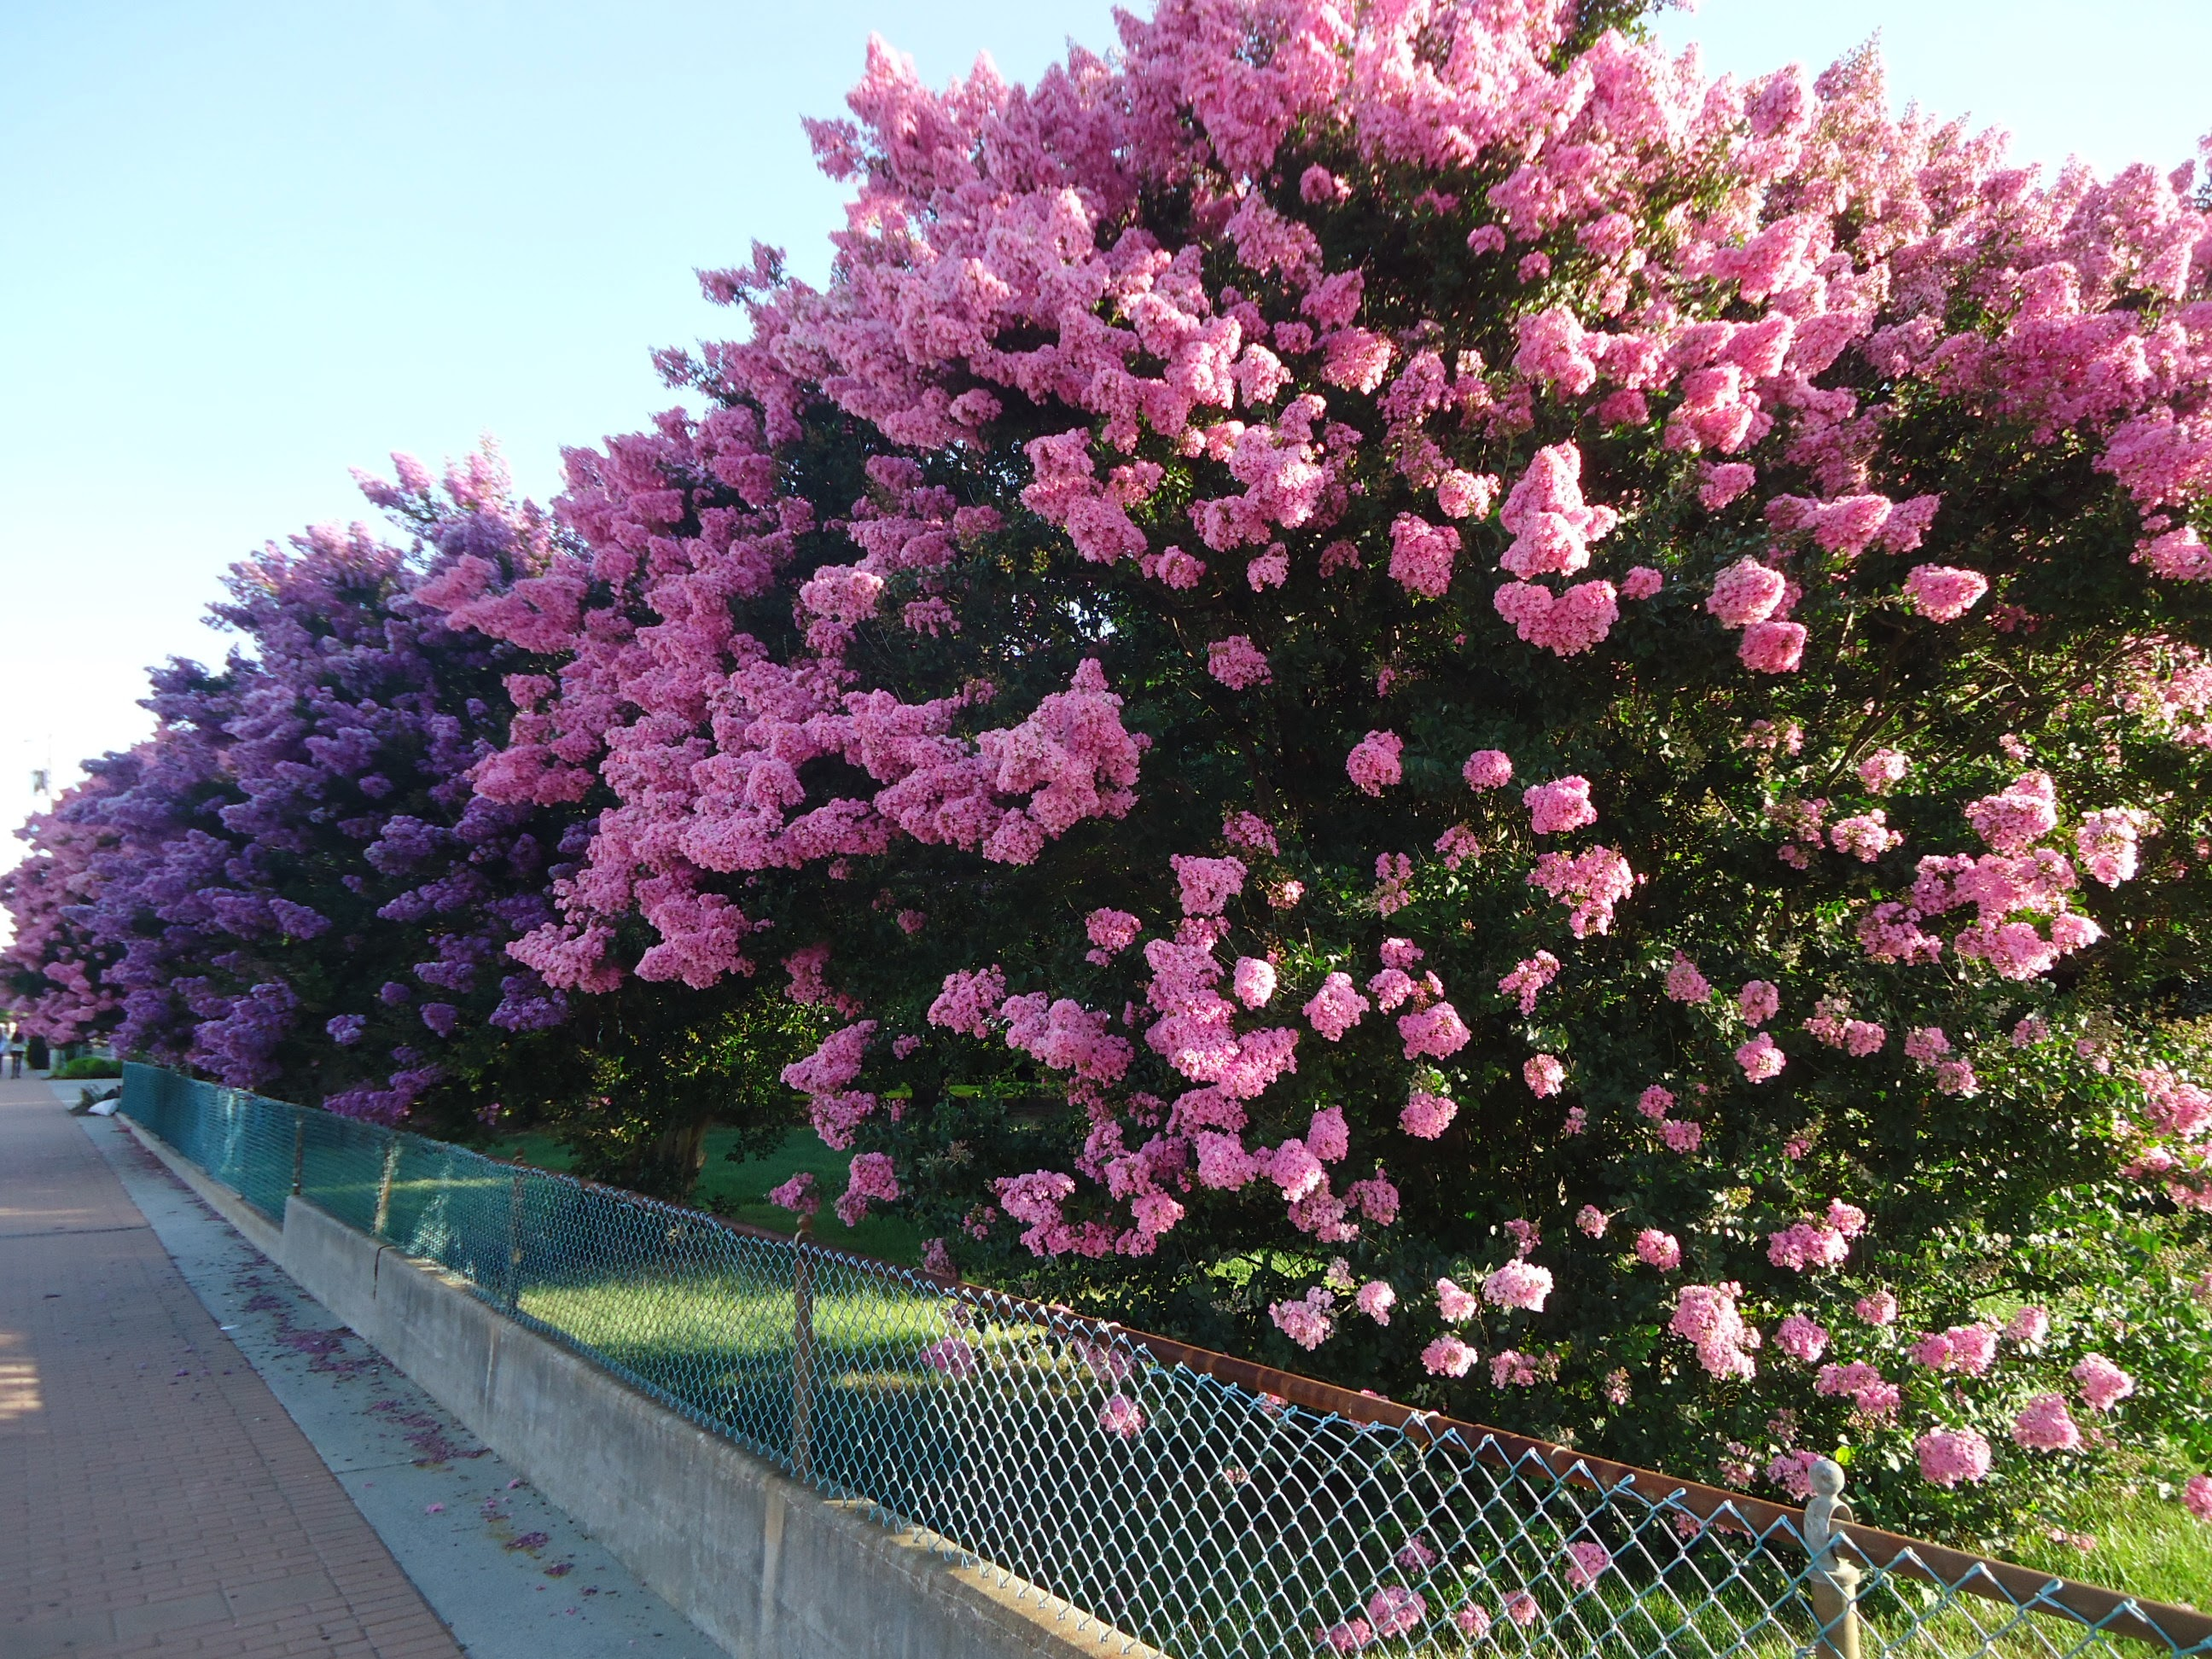 Fileflowering Bushes In Wildwood New Jersey Early Augustg